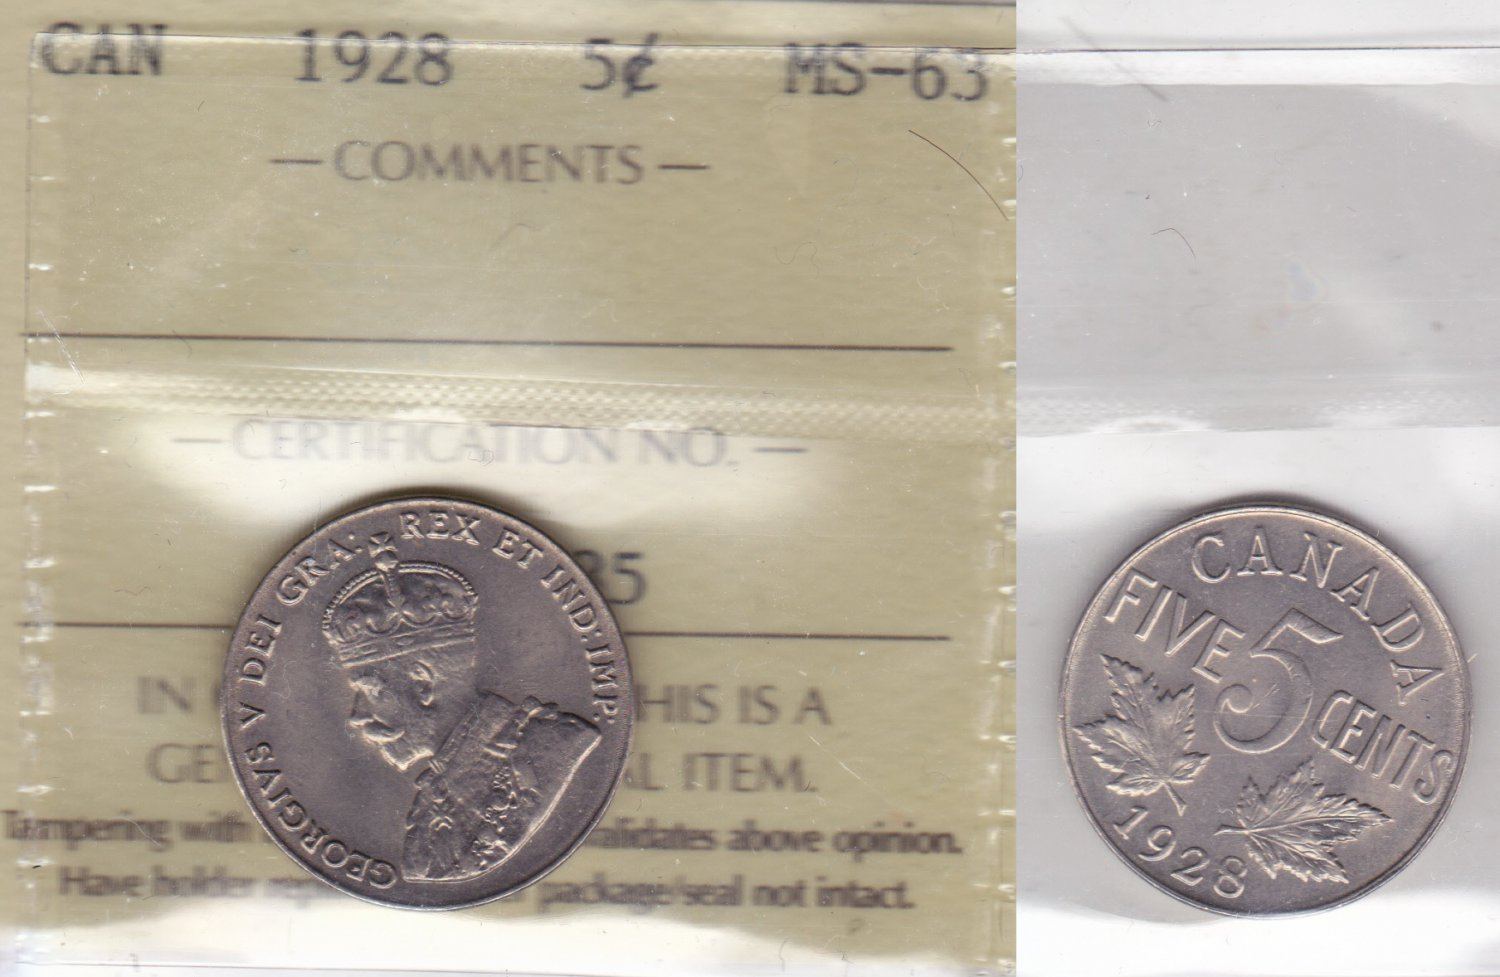 1928 ICCS MS63 5 cents Canada five nickel XJR 985